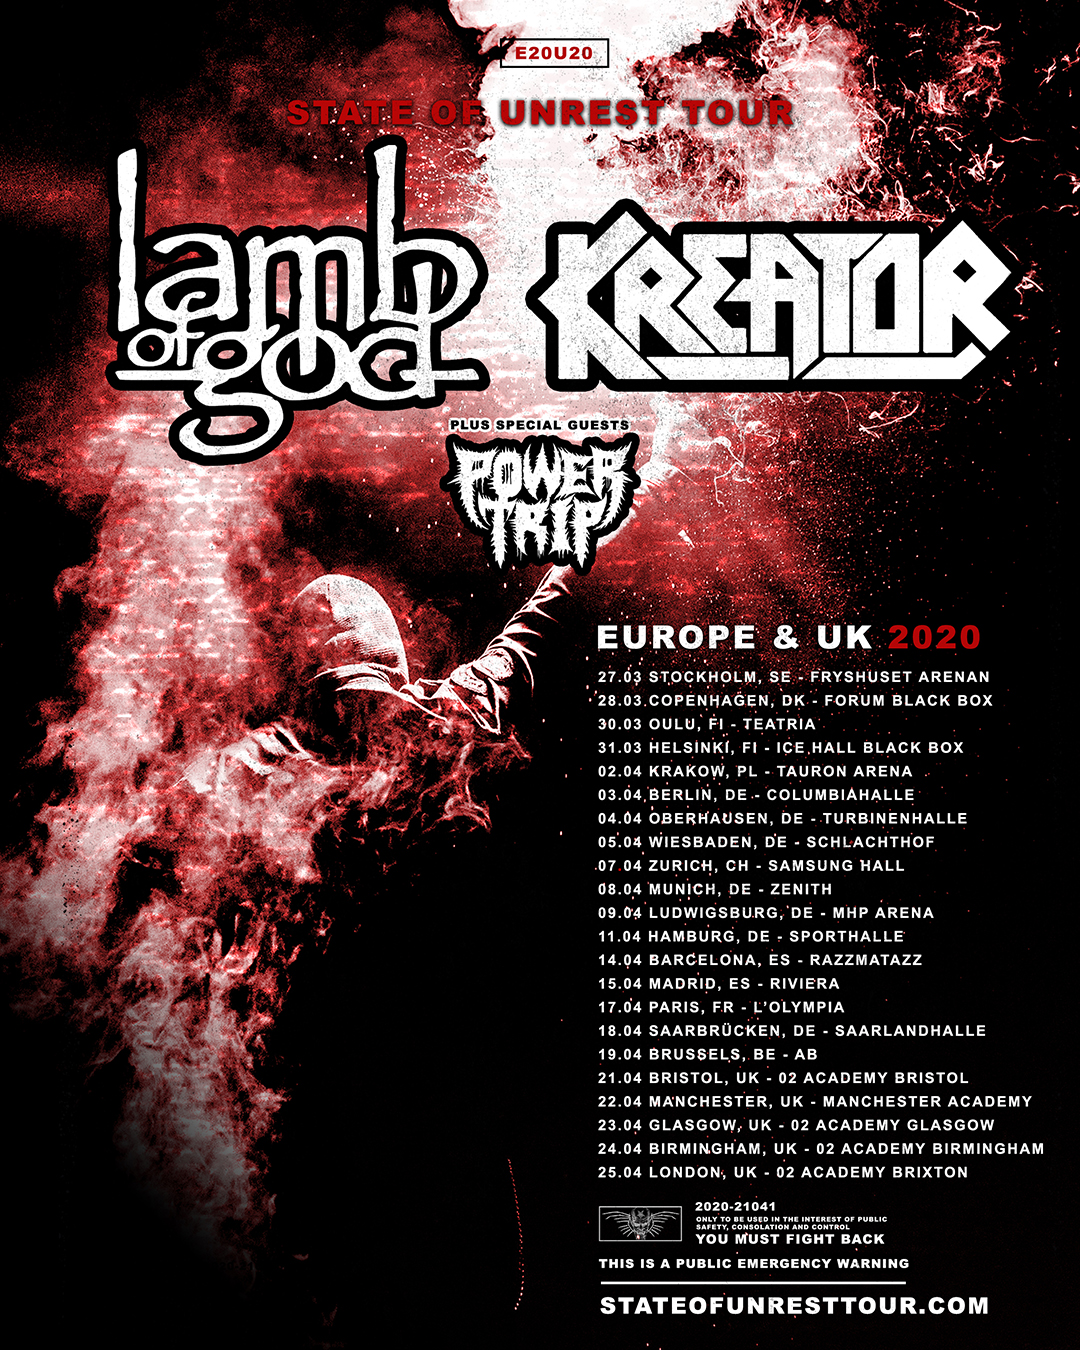 LAMB OF GOD & KREATOR Announce European Co-Headlining Tour for 2020 - Two giants of extreme metal have teamed up to lay waste to European shores in 2020. Grammy nominated Richmond, VA metallers LAMB OF GOD and German thrash pioneers KREATORwill bring a